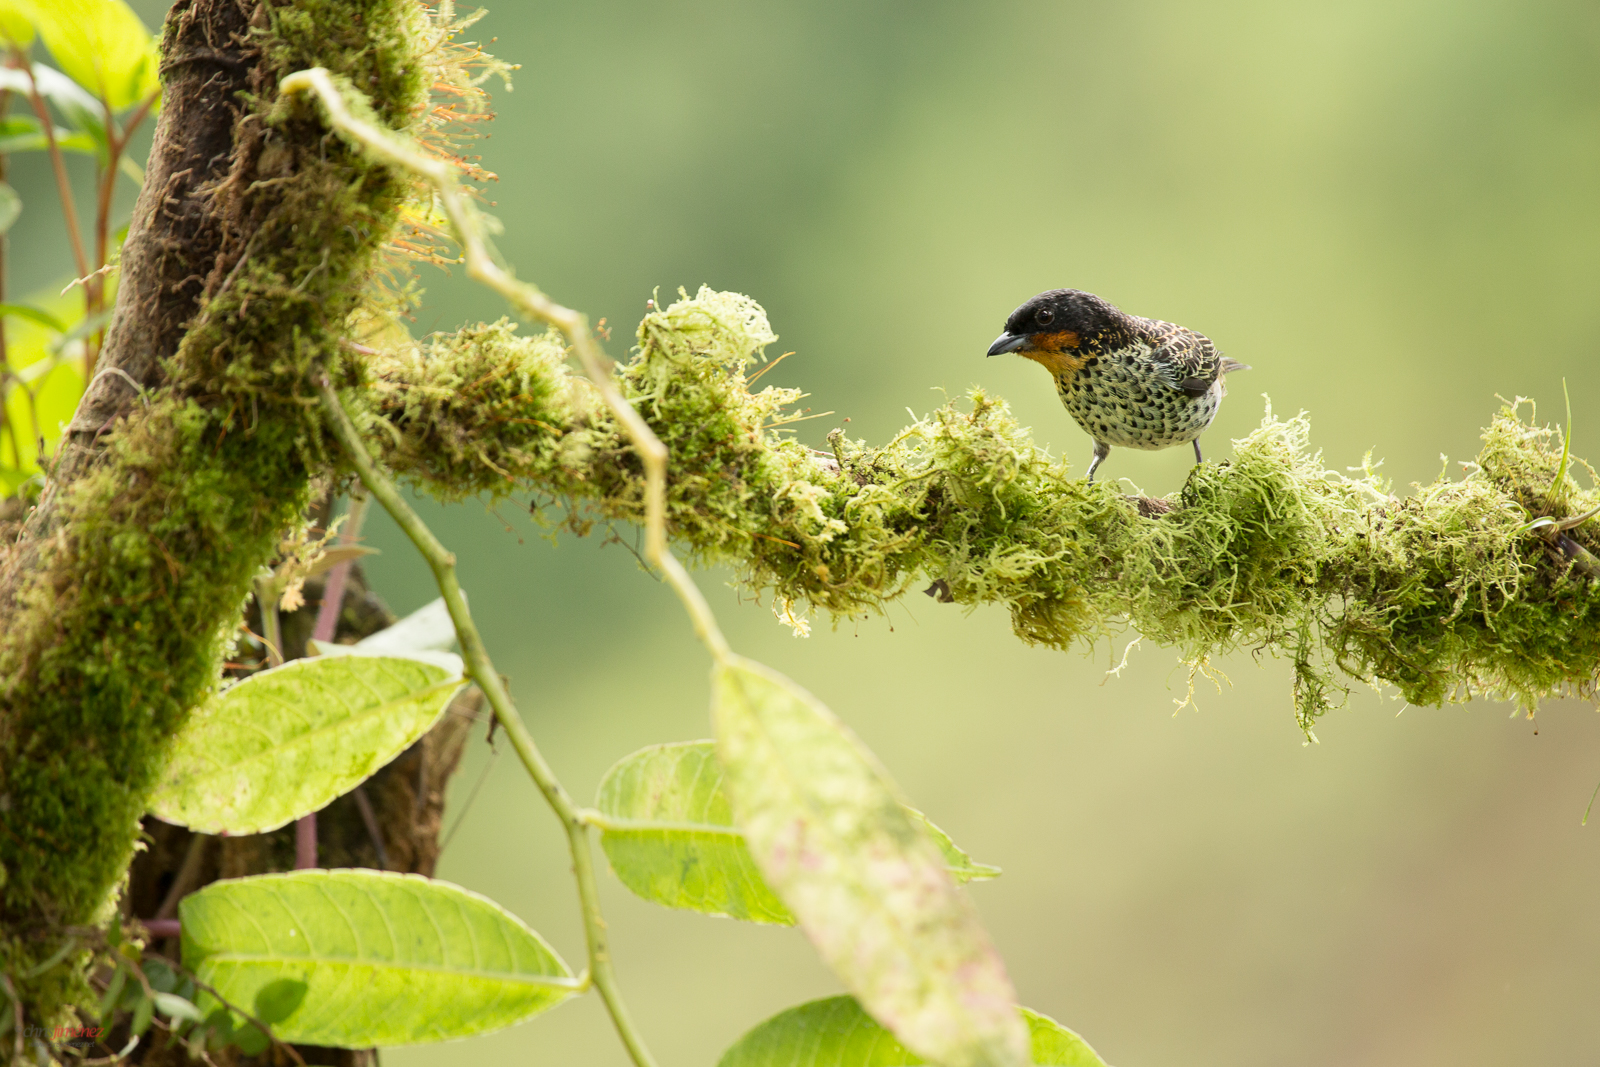 Rufous Throated Tanager (Tangara rufigula) perched on a branch at the rainforest of Cali, Colombia